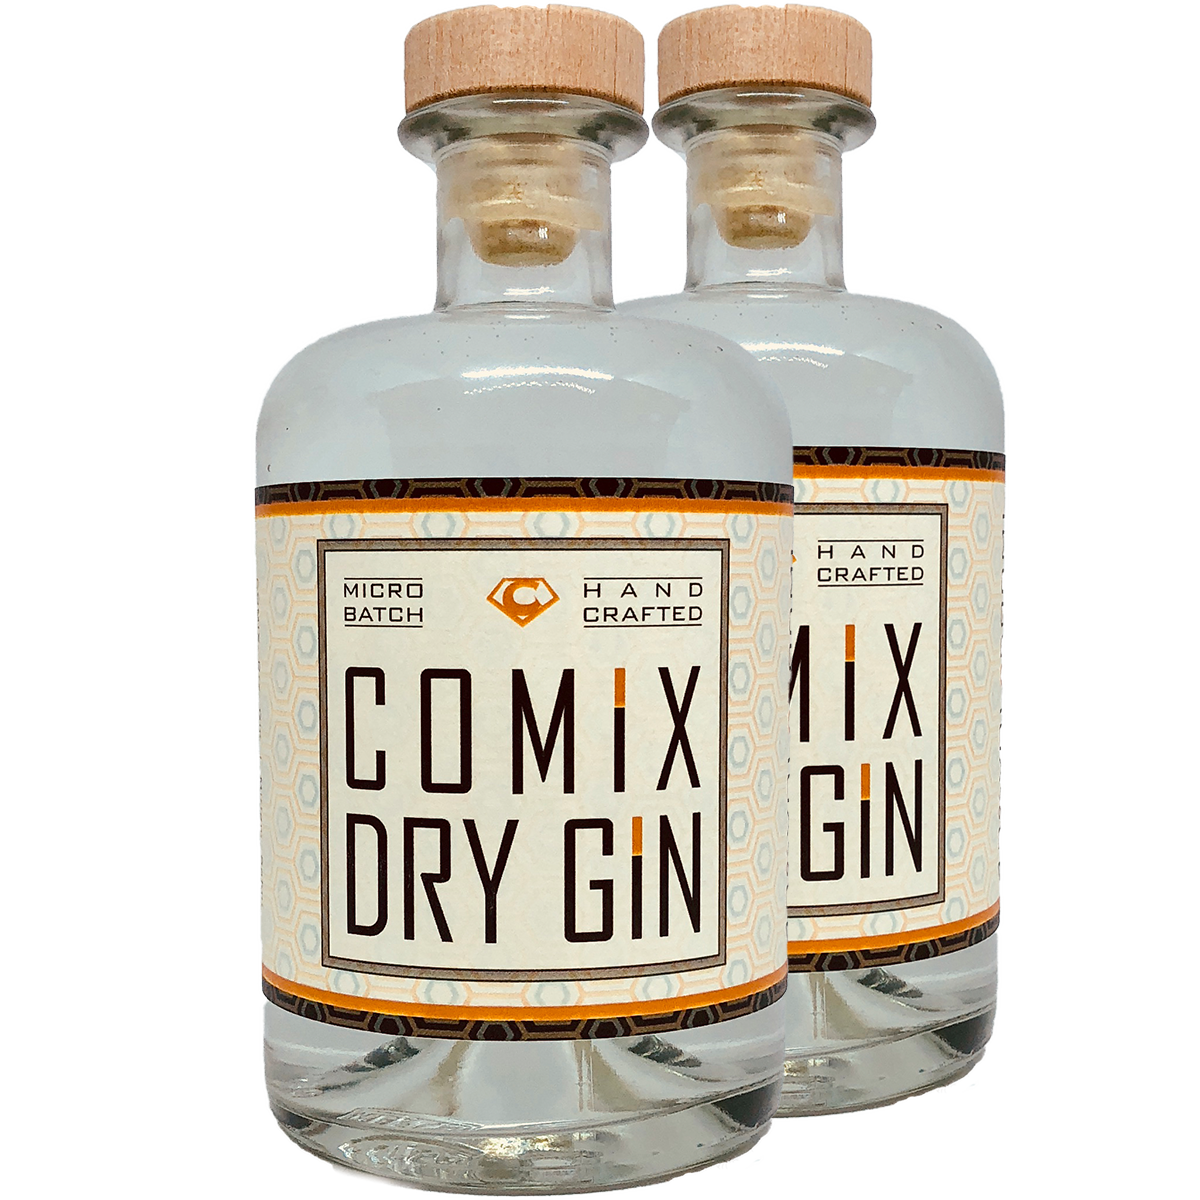 COMIX Dry Gin Doppelpack